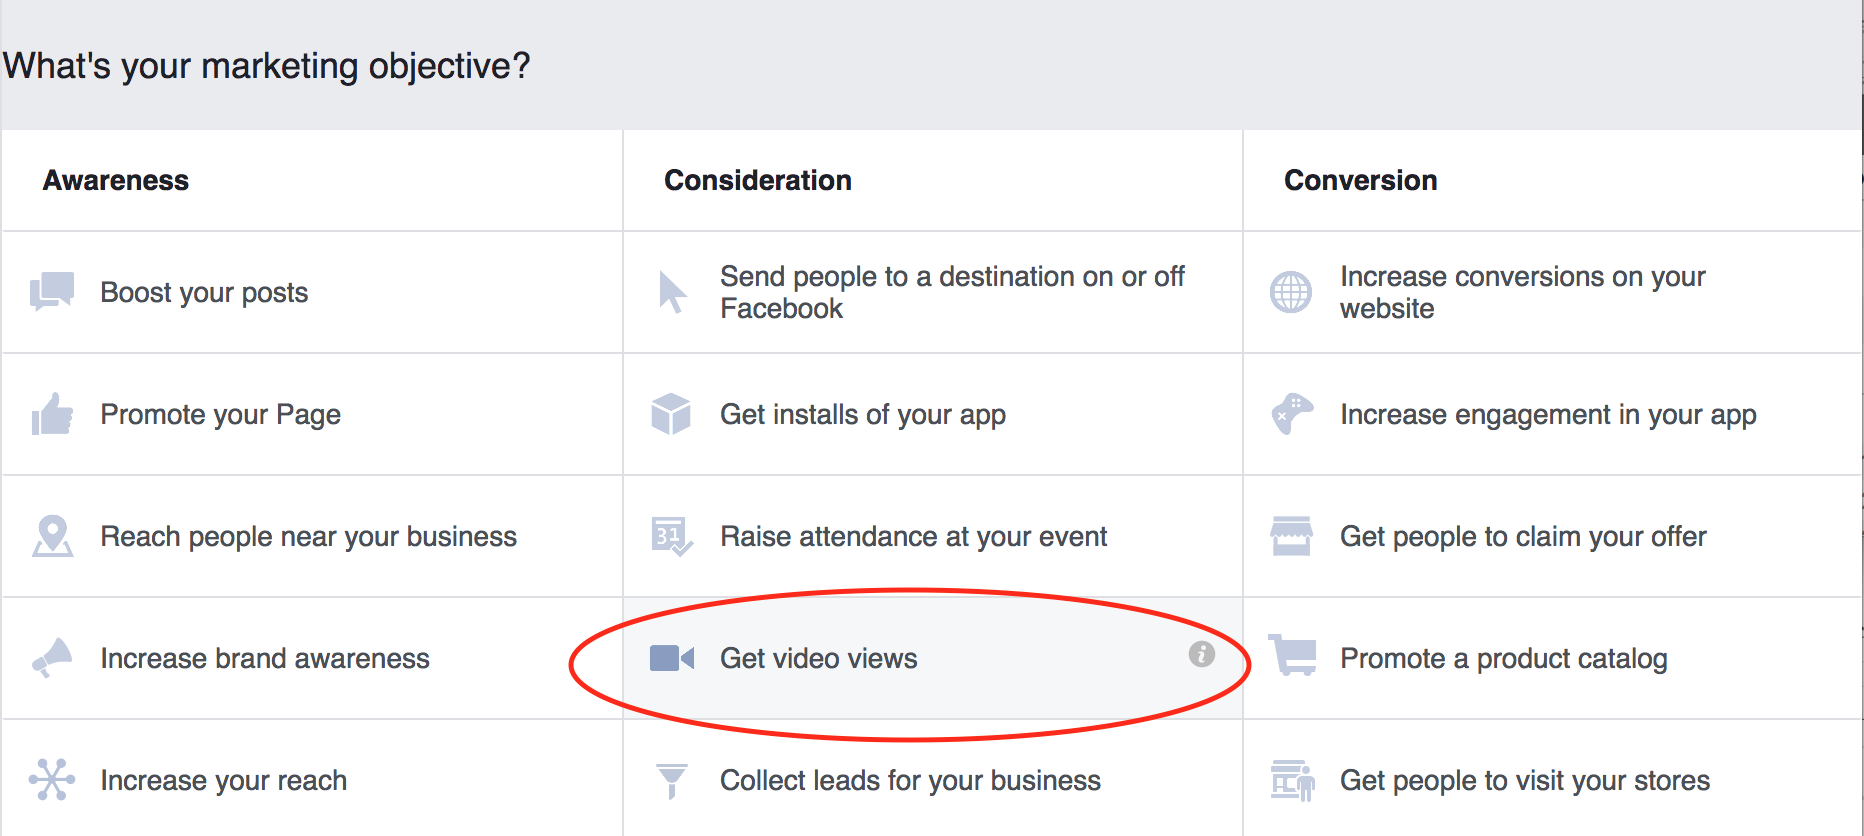 Facebook video views objective